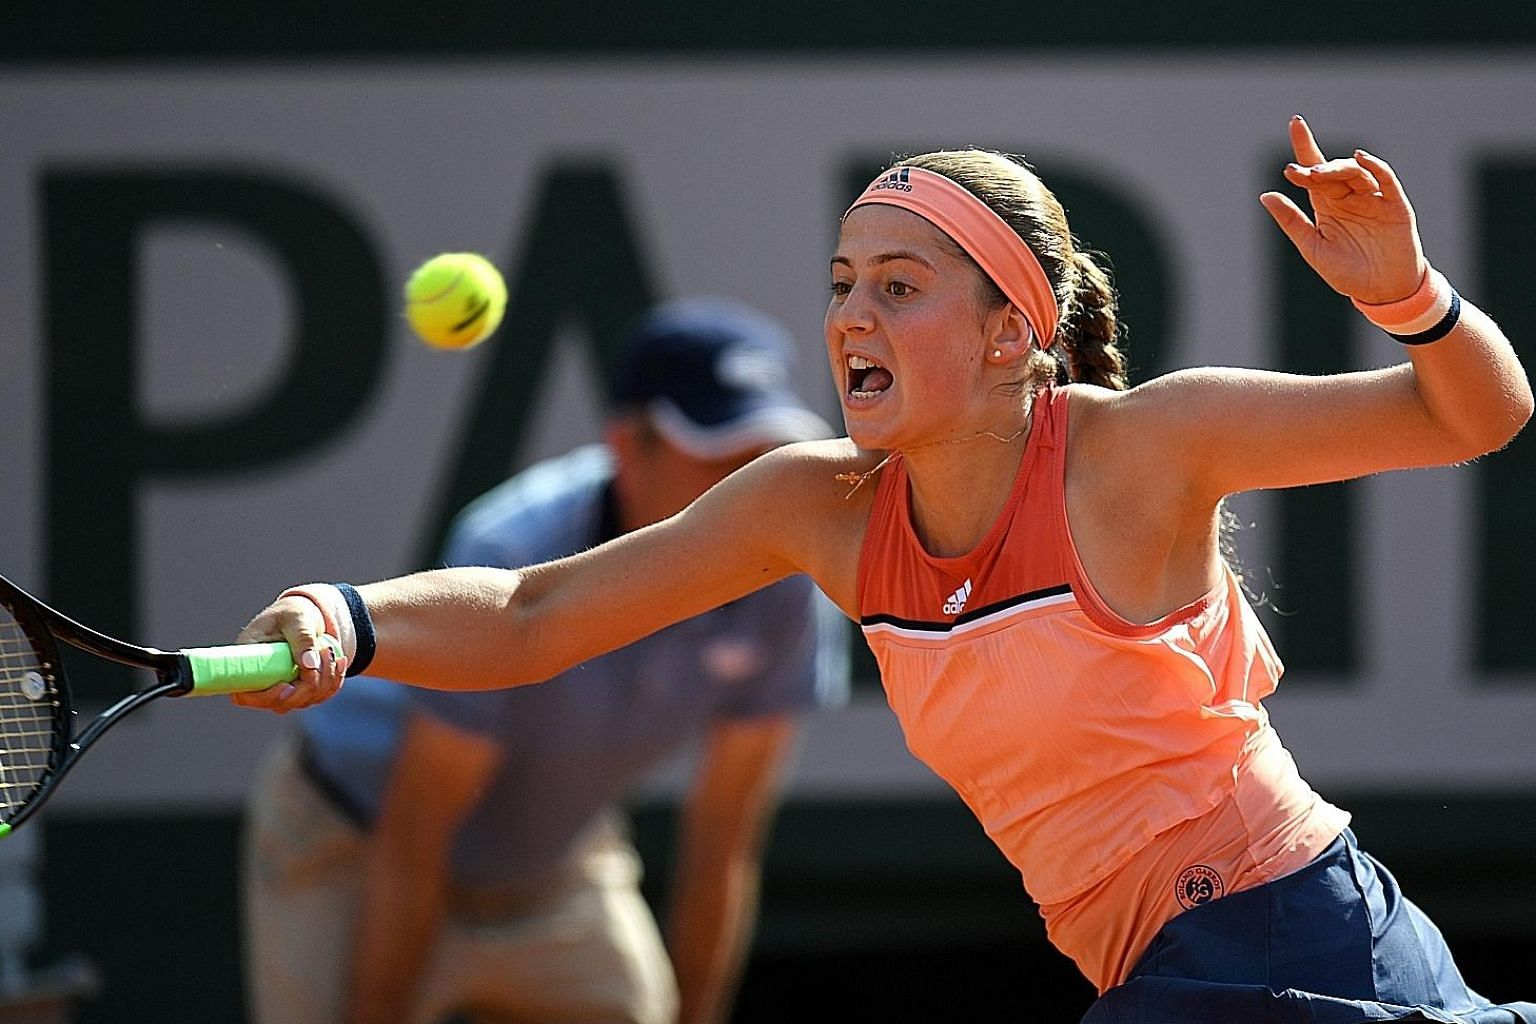 Latvia's Jelena Ostapenko was beaten for the third time in as many meetings by Ukraine's Kateryna Kozlova. That meant she was the first French Open women's title holder in 13 years to lose in the opening round.